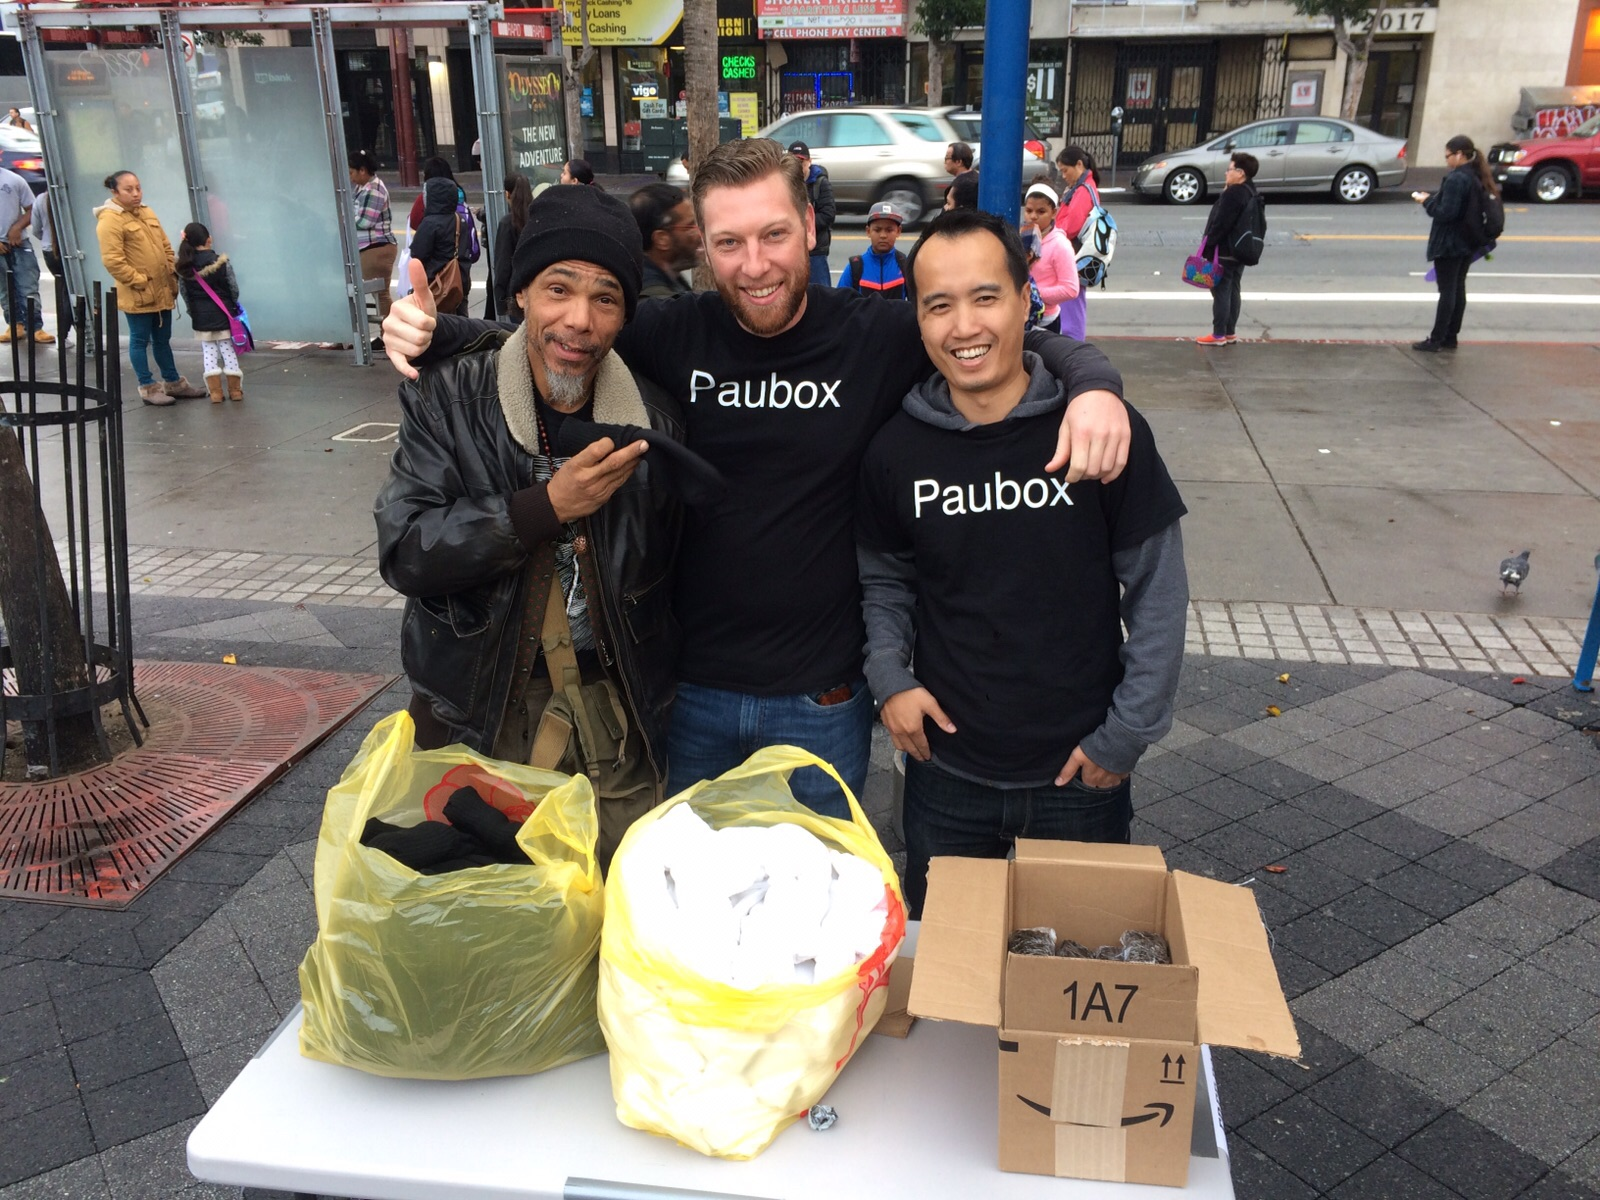 Mahalo to the Mission: 100 spam musubi and 100 pairs of socks